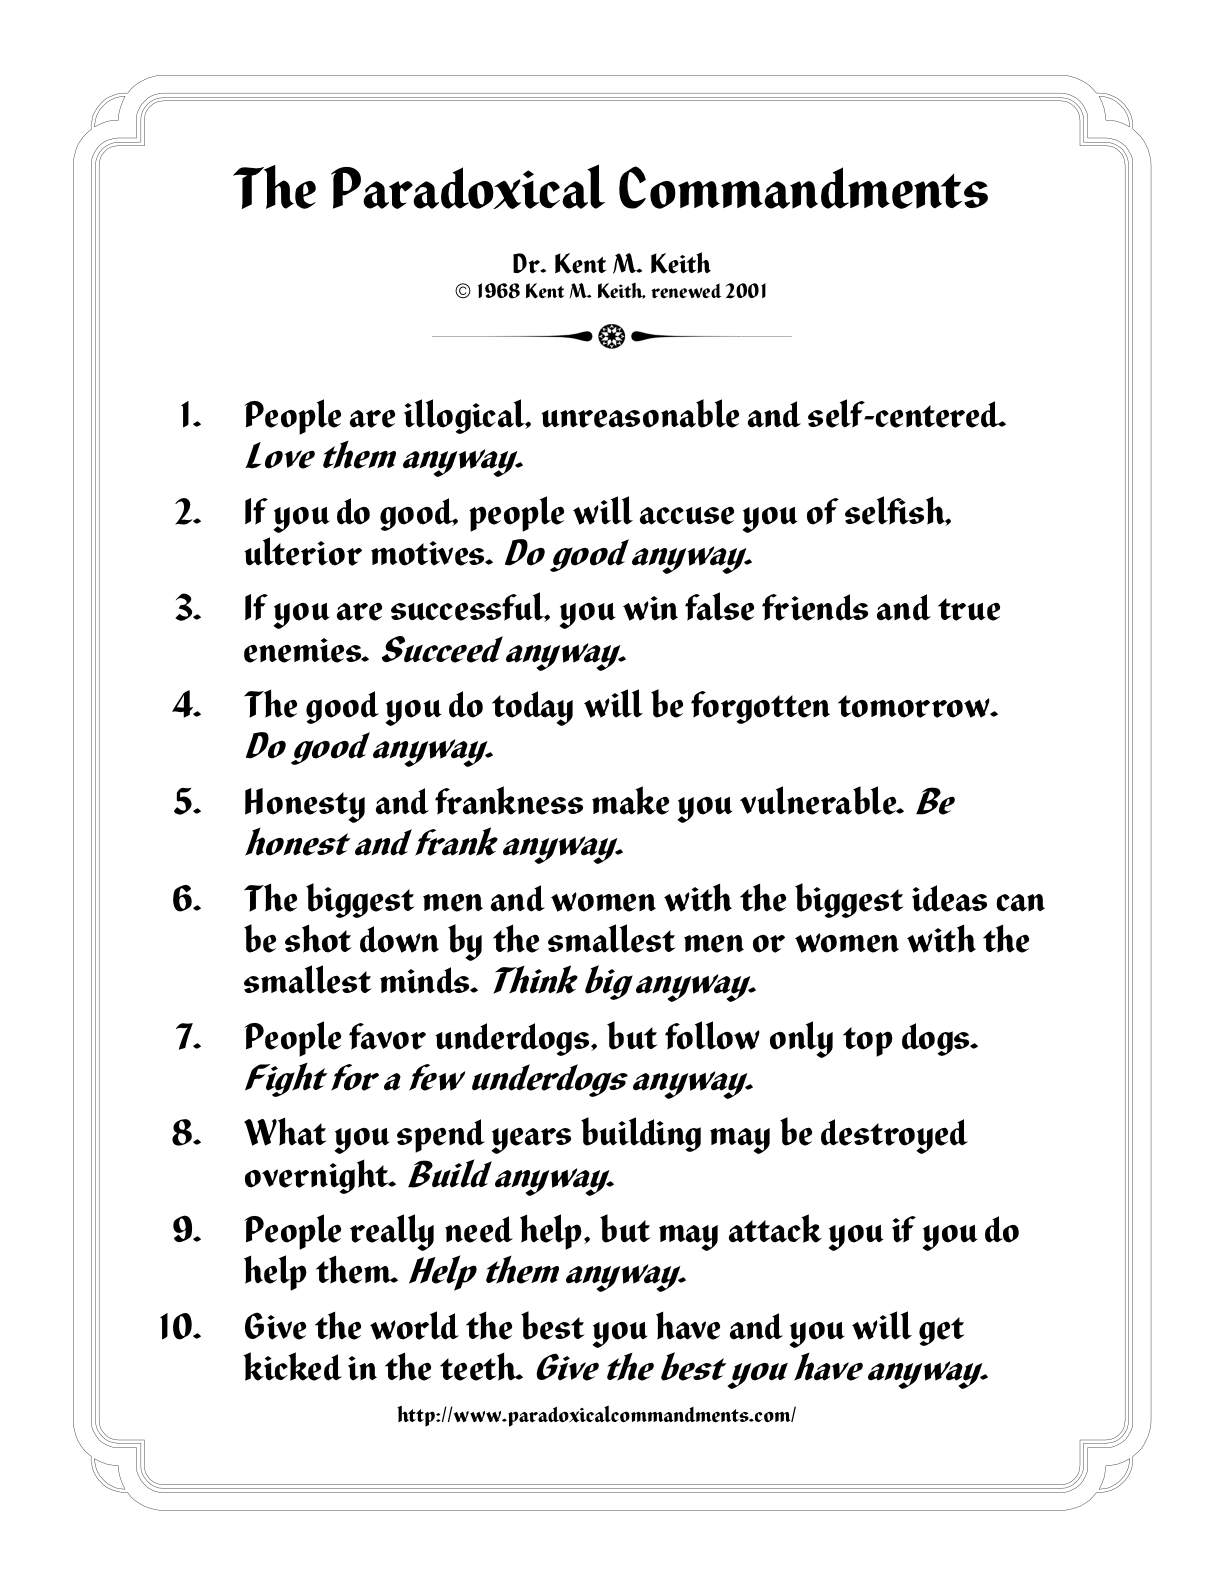 RT - The Paradoxical Commandments